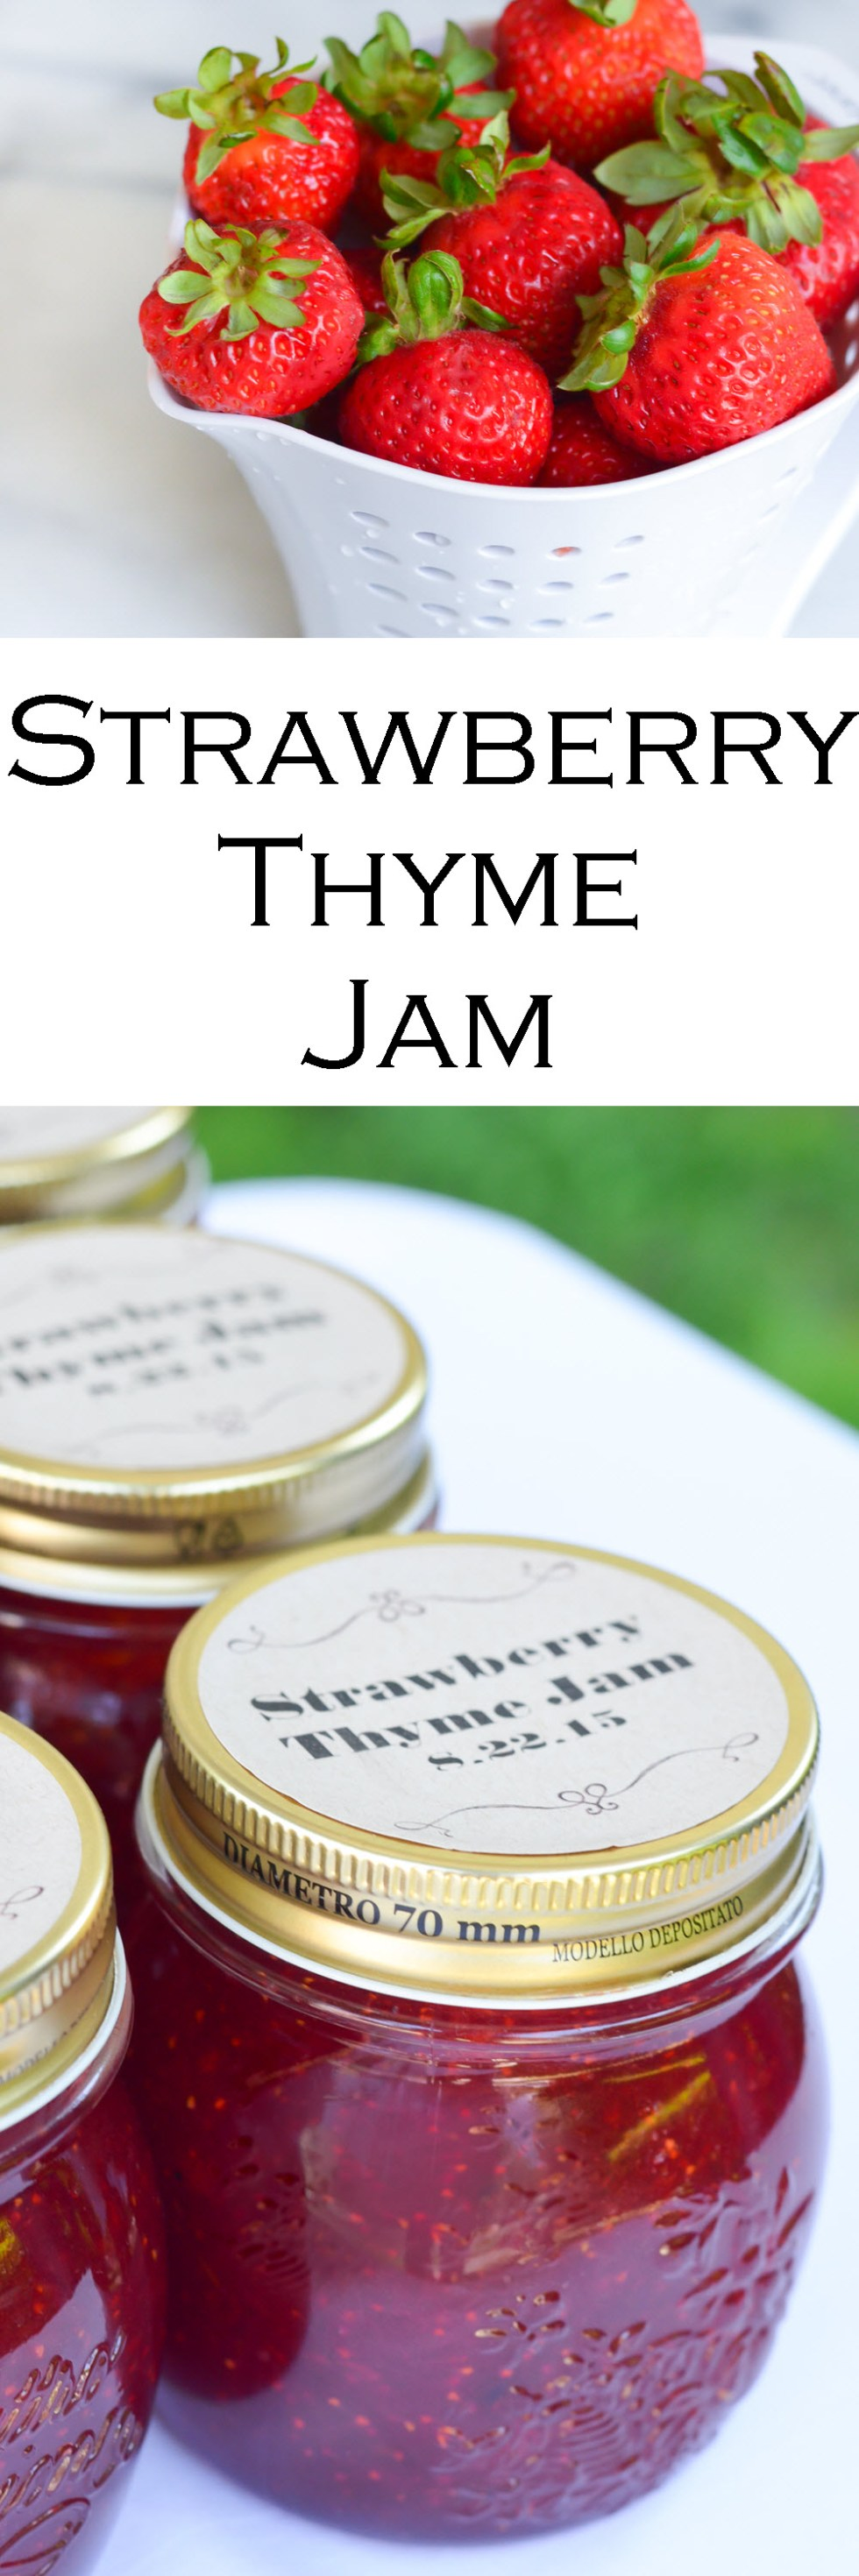 Homemade Jam Wedding Favors Recipe + Supplies | Luci\'s Morsels